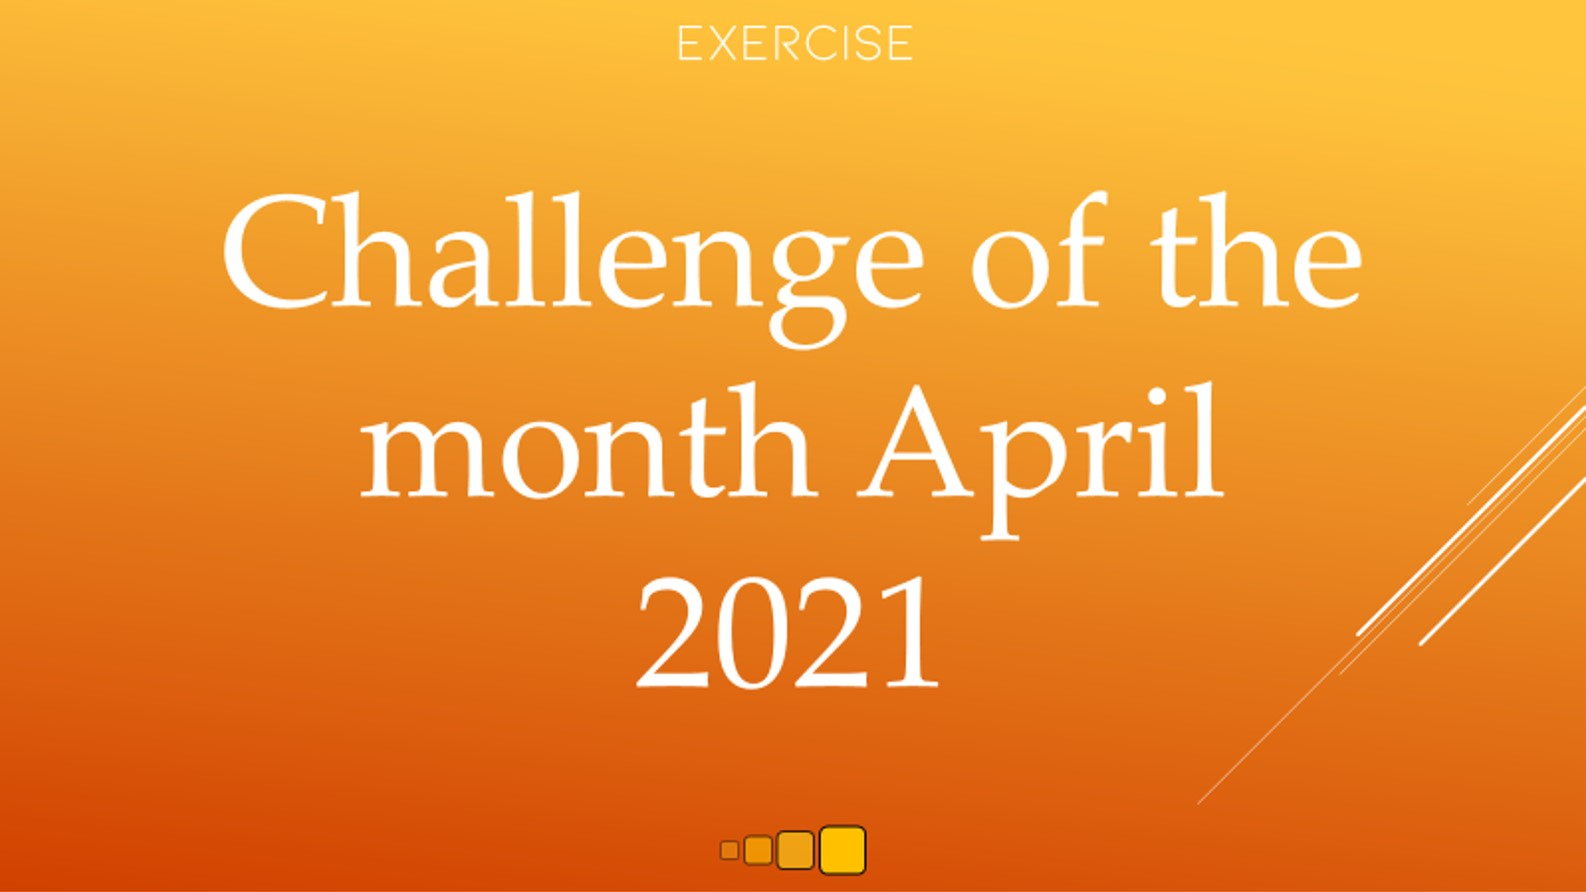 challenge of the month april 2021